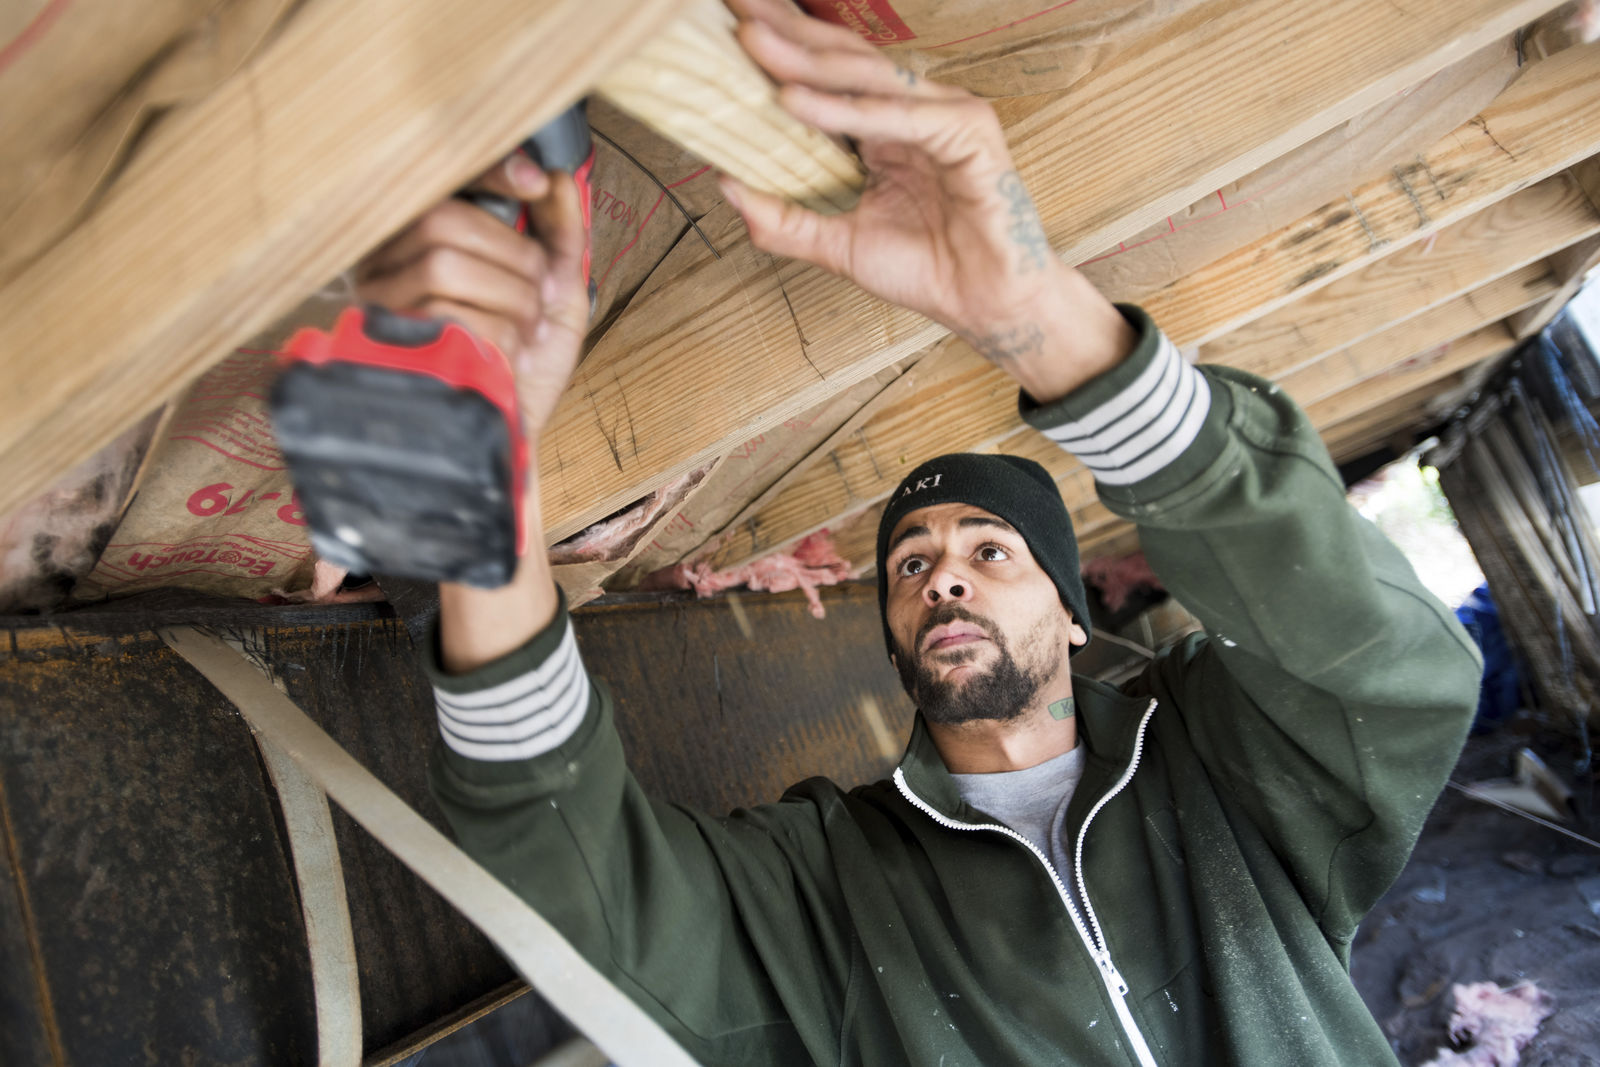 Joshua Voaklander works to repair his home damaged by flooding from Hurricane Florence Friday, Feb. 1, 2019, in Conway, S.C. Voaklander says that if floodwaters come inside the house again, he is moving. (AP Photo/Sean Rayford)